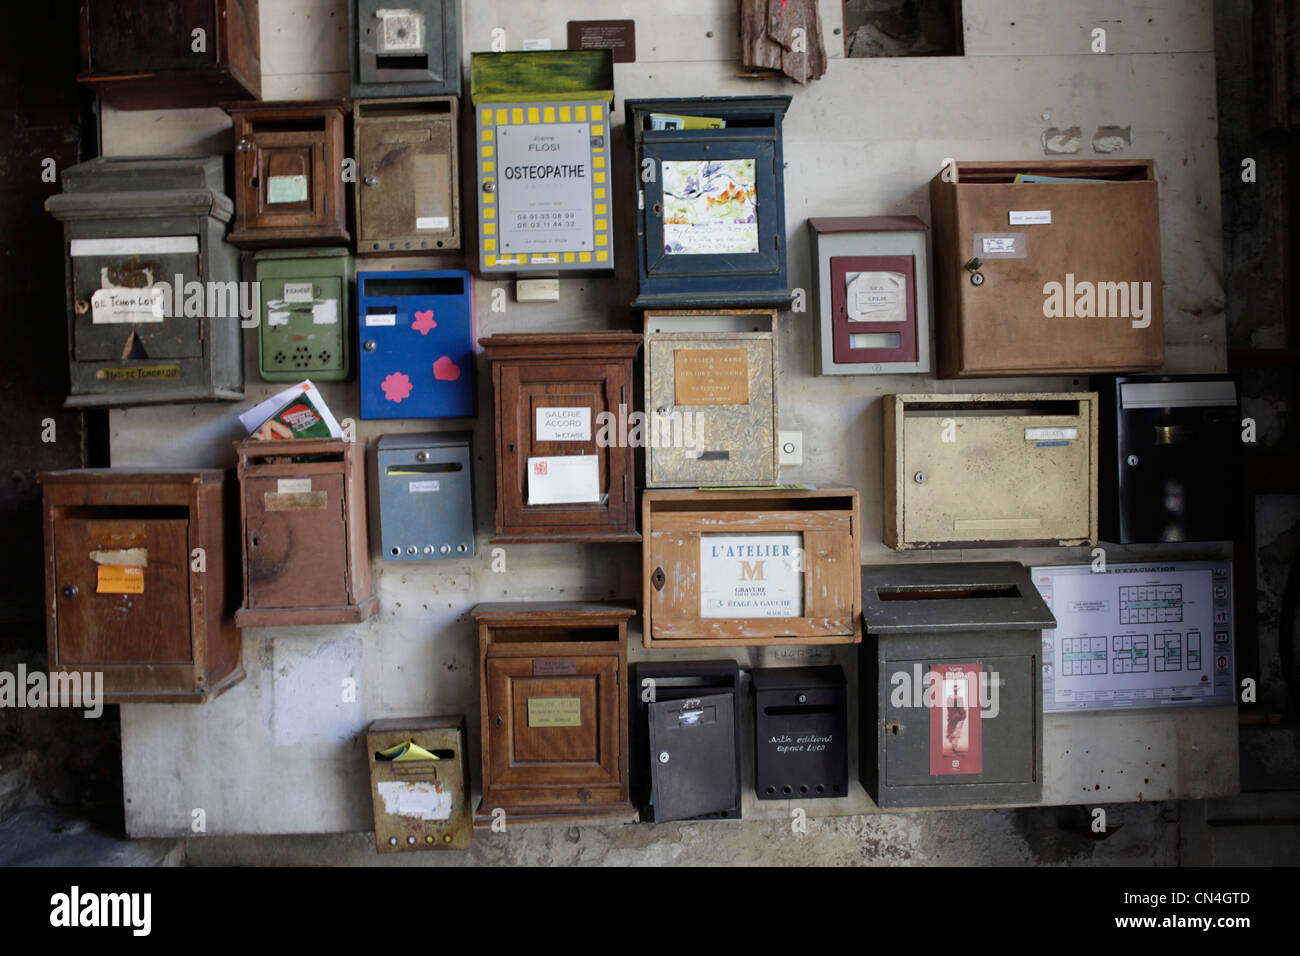 France, Bouches du Rhone, Marseille, mailboxes - Stock Image